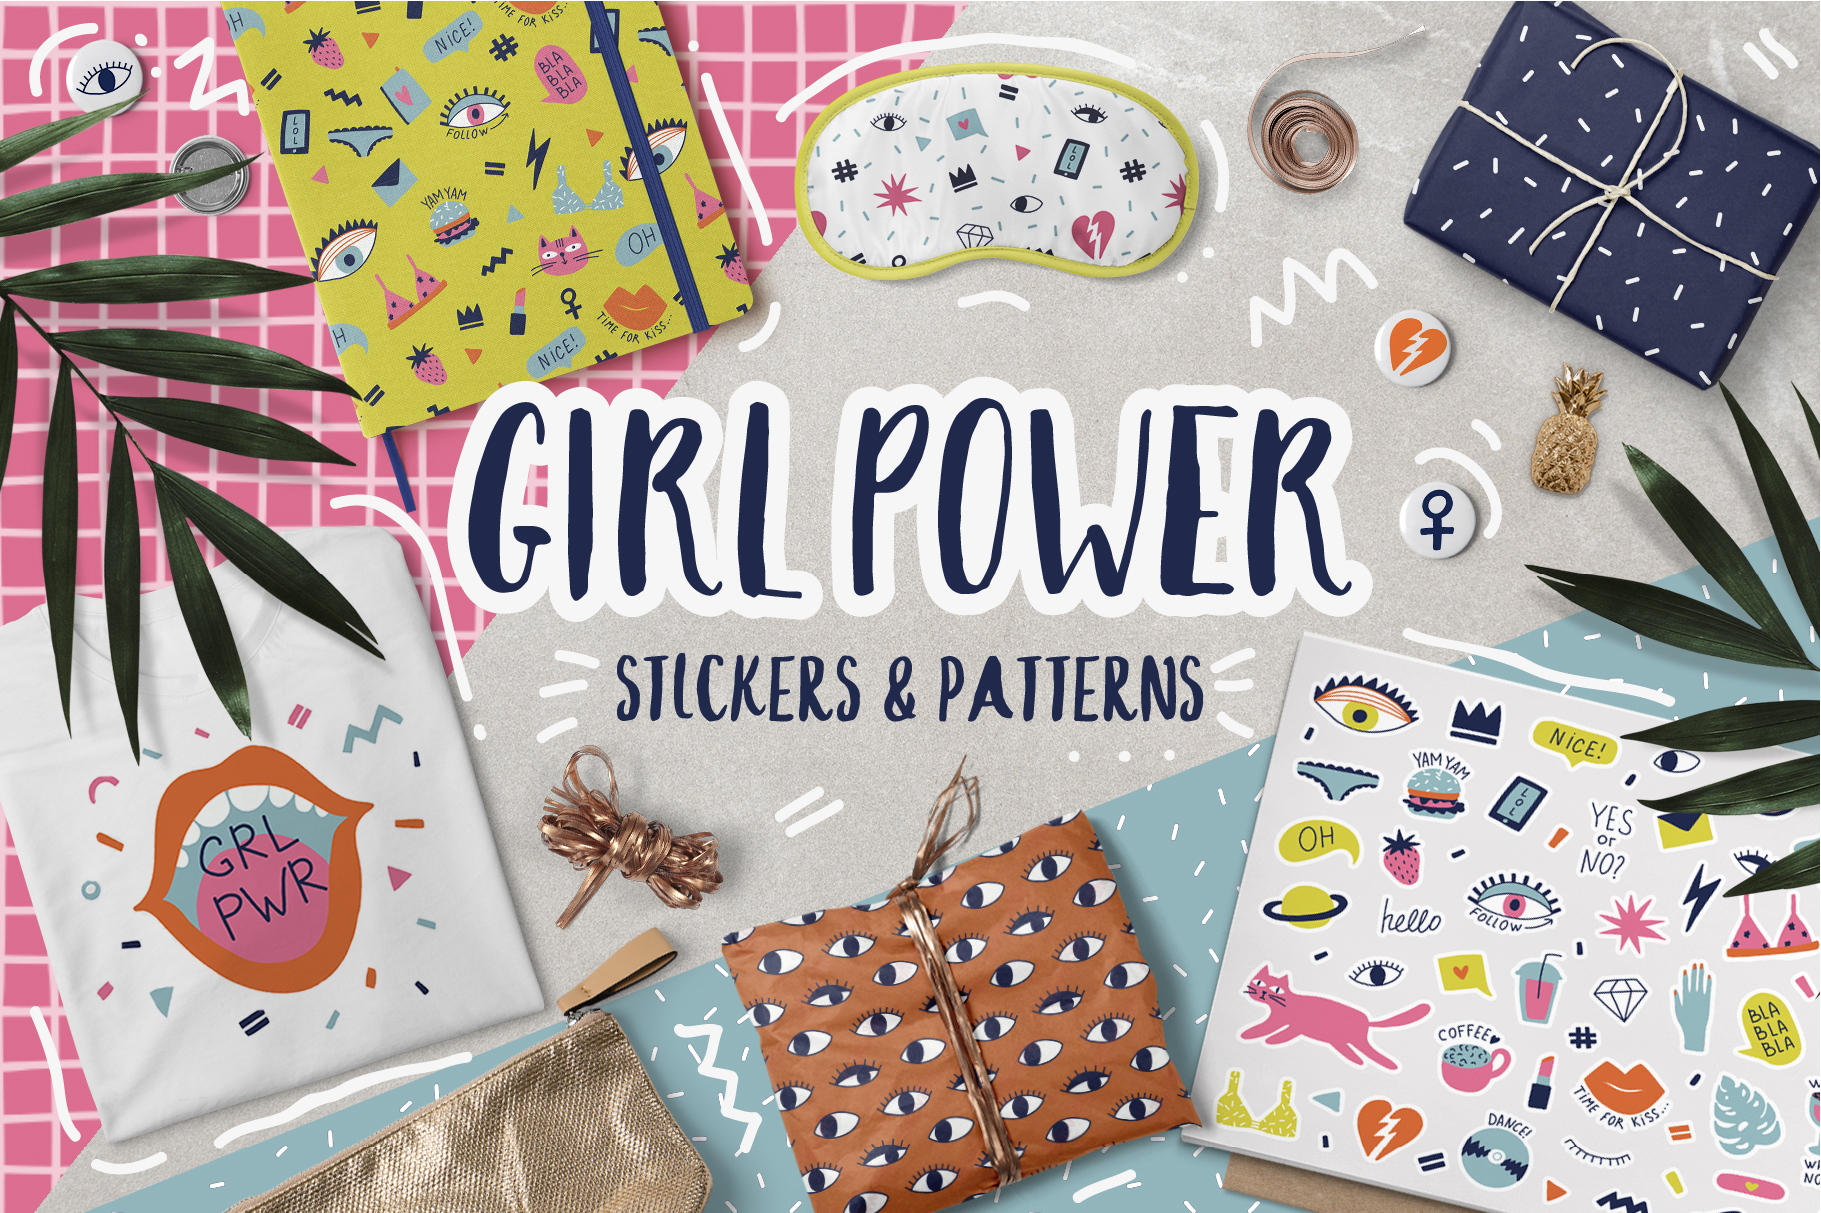 Girl Power stickers & patterns example image 1